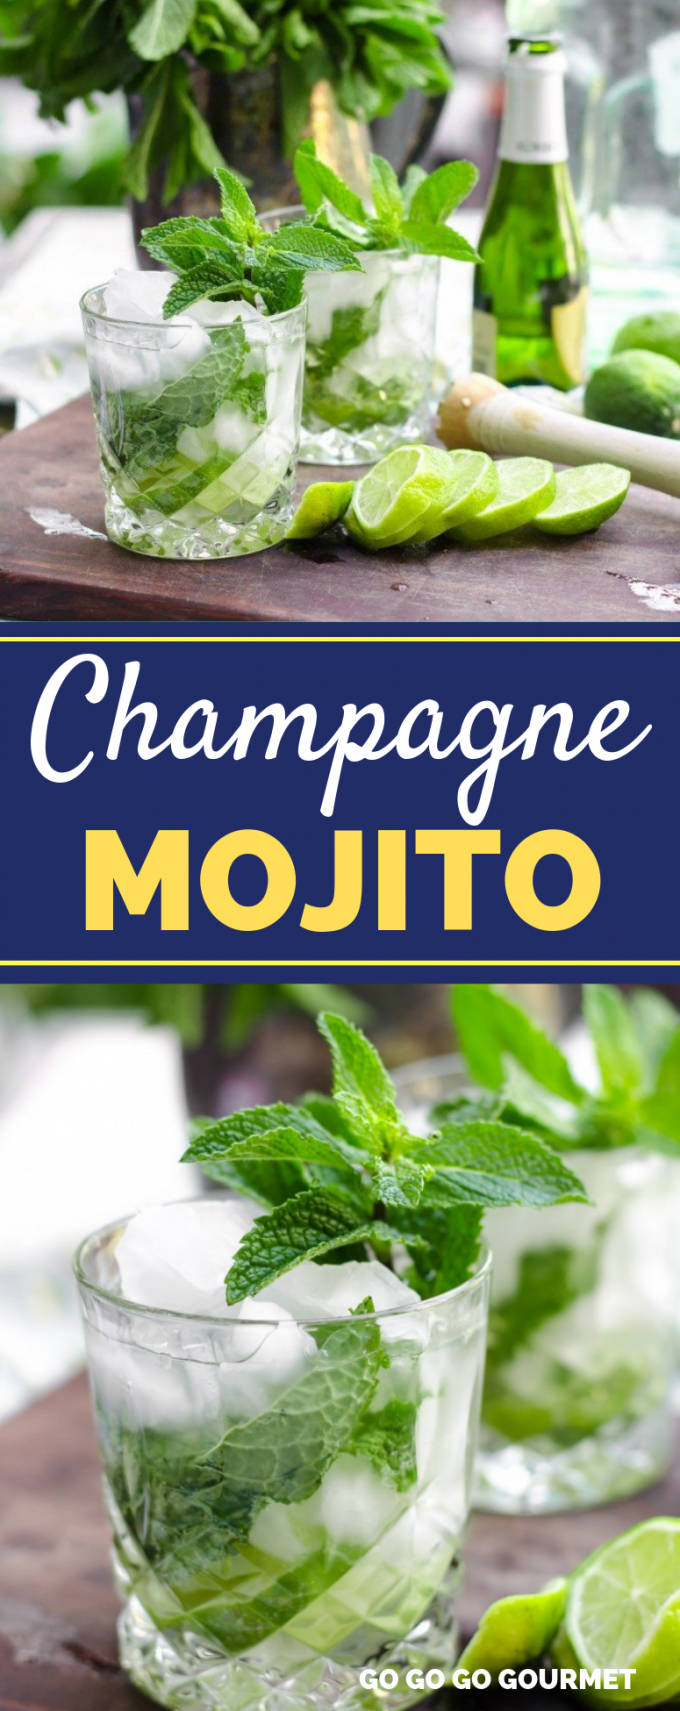 When it comes to cocktails, these Champagne Mojitos are the best! With lime juice, rum, simple syrup and a sparkling wine like champagne, they are super refreshing and perfect for summer! #gogogogourmet #champagnemojitos #mojitorecipes #summercocktails via @gogogogourmet